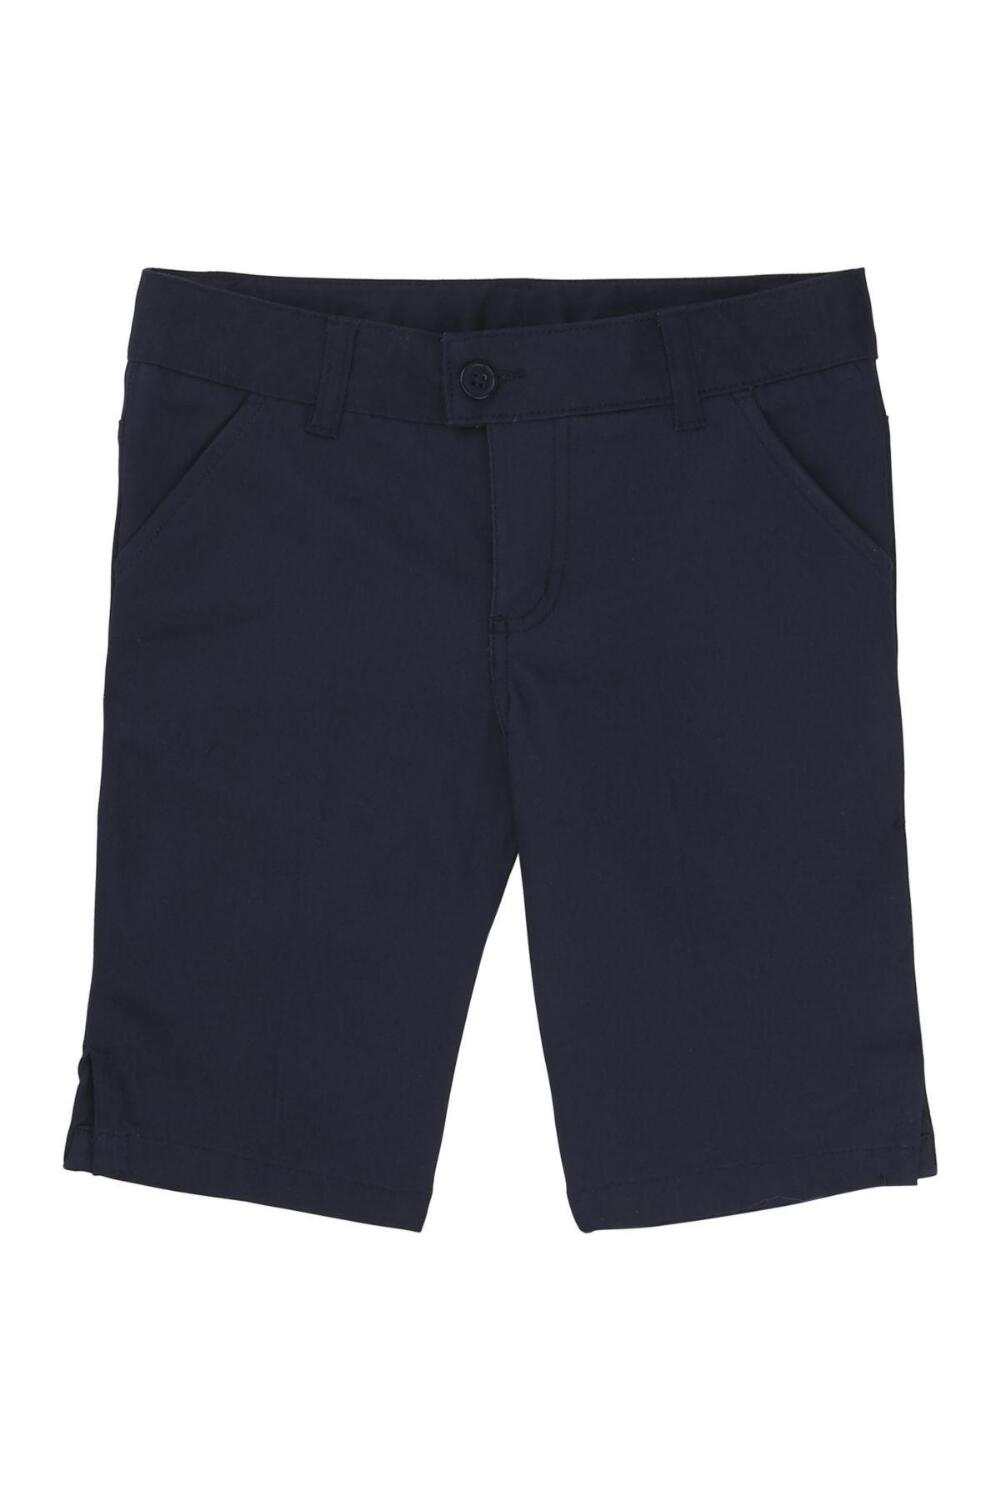 French Toast Girl's Bermuda Short (Color: Navy Short - YLS, Size: 4)